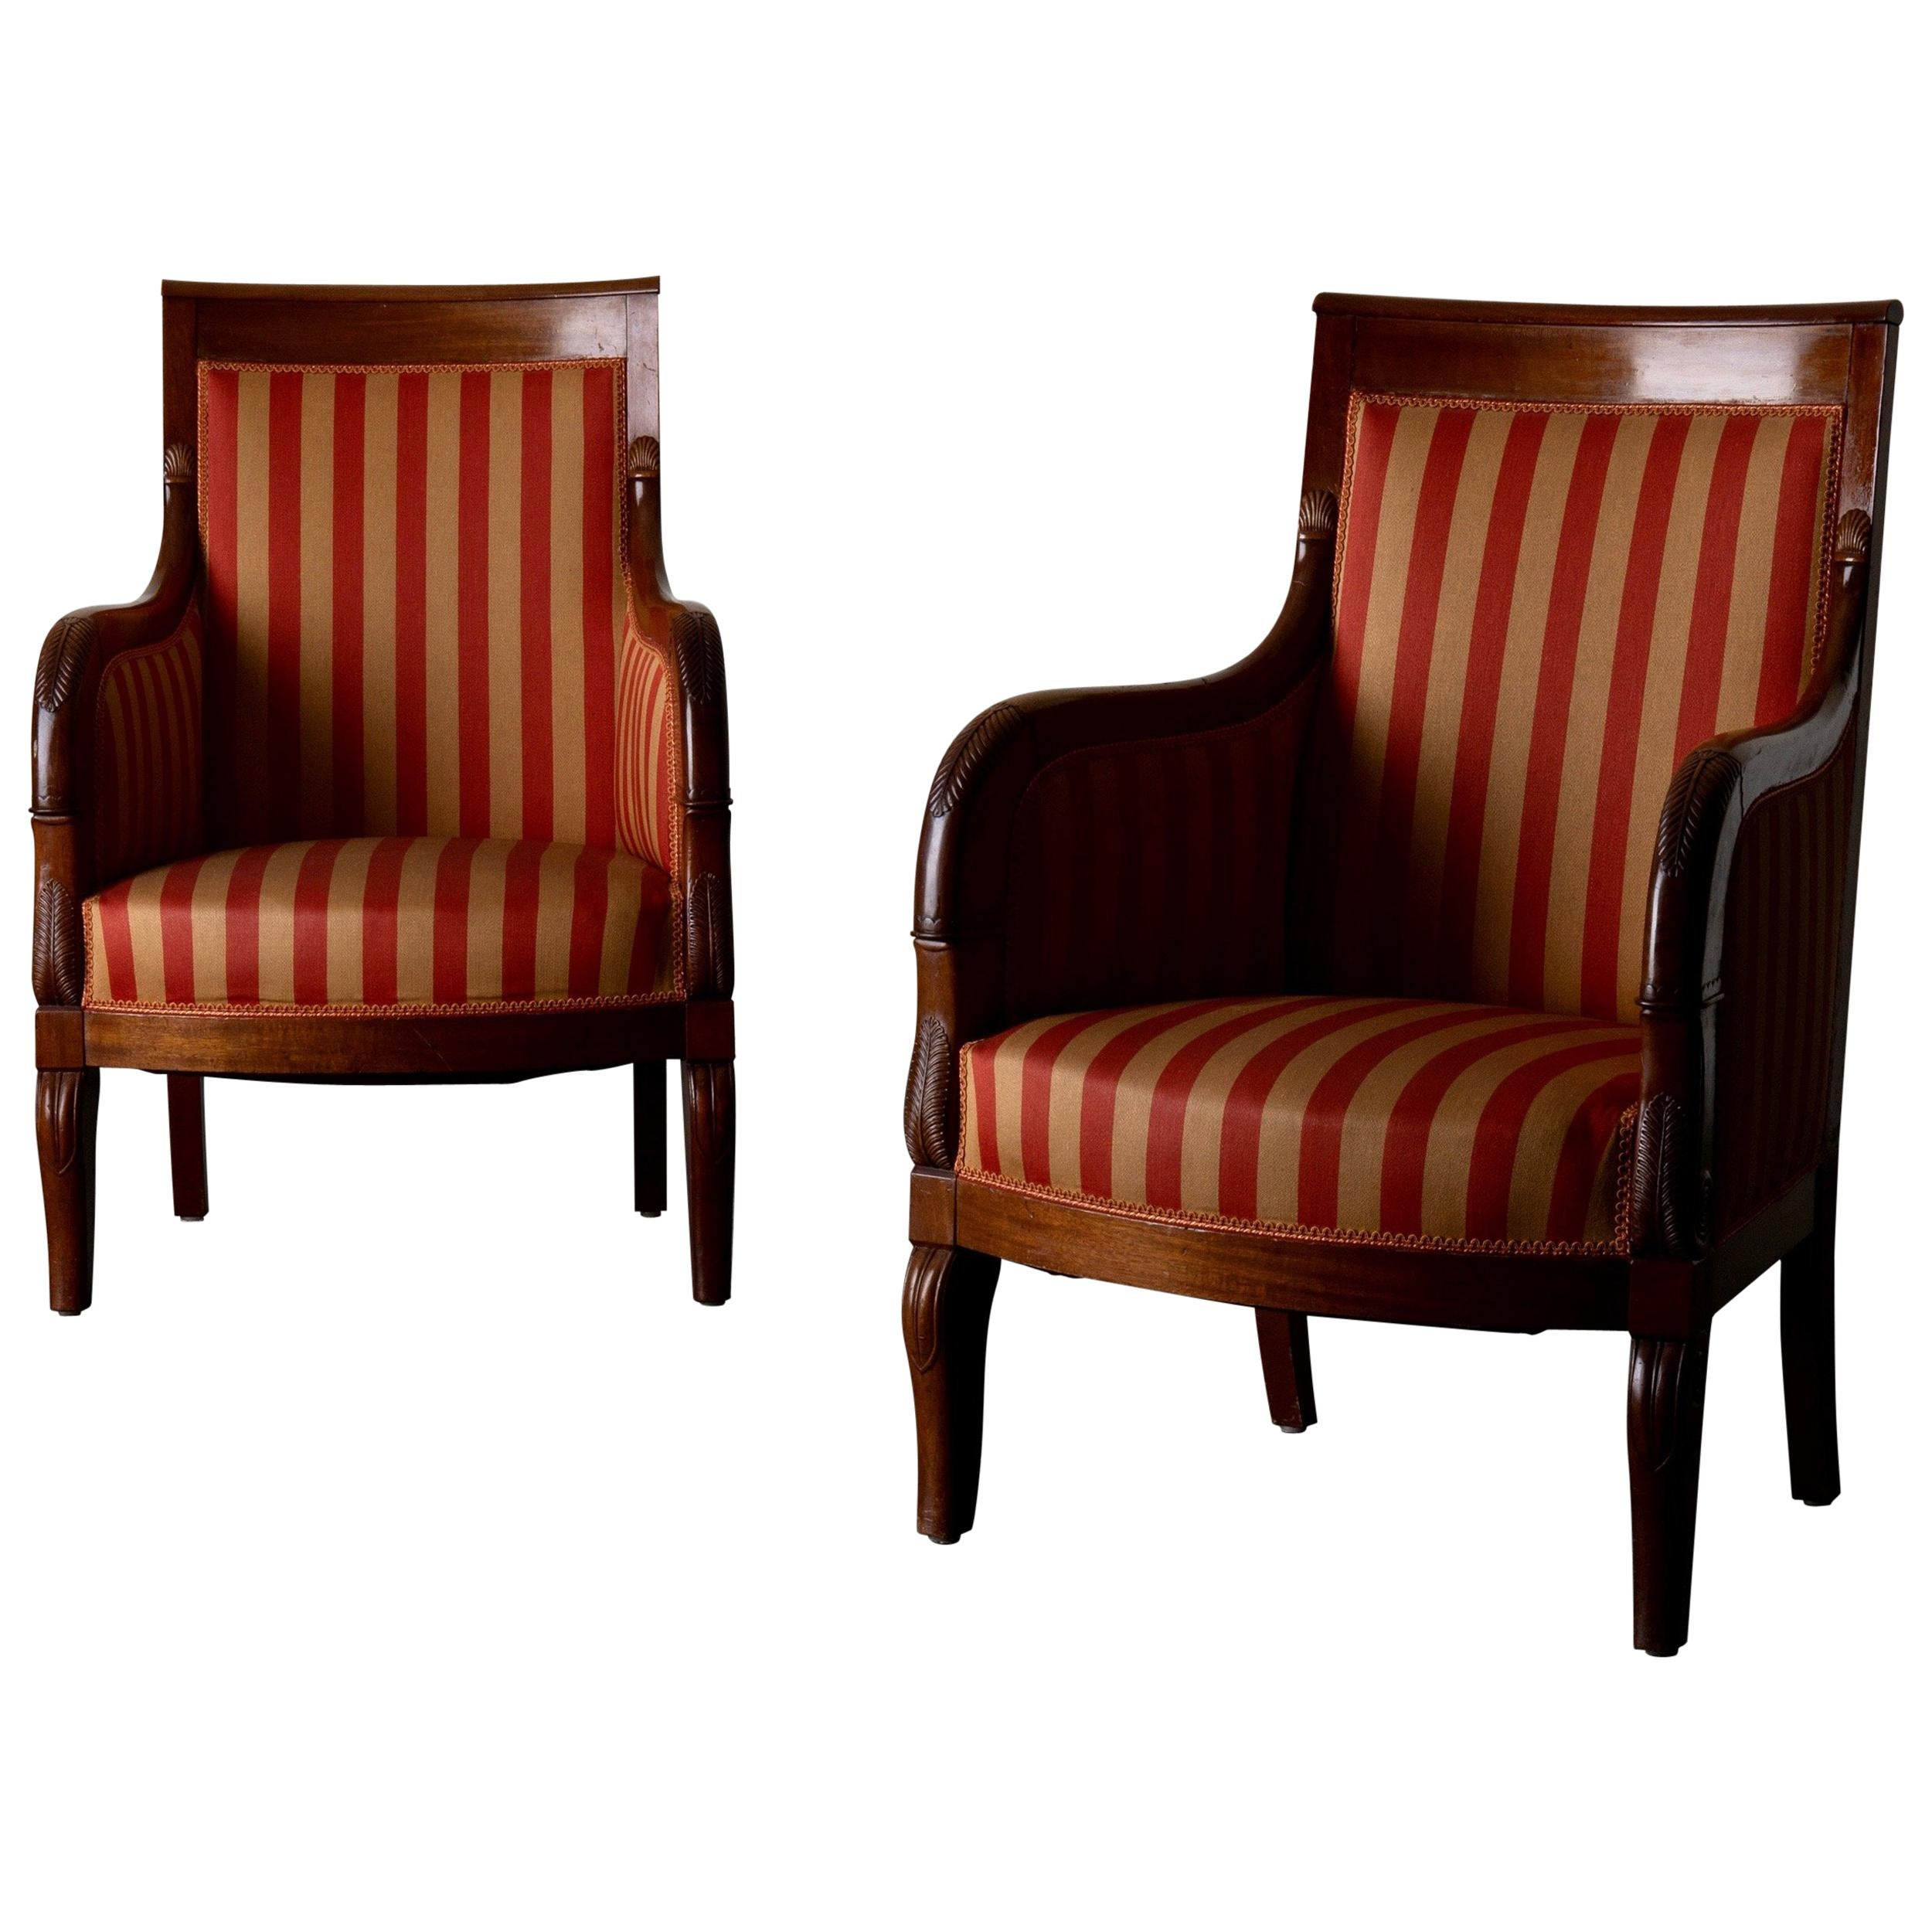 Chairs Pair of Empire French Mahogany France